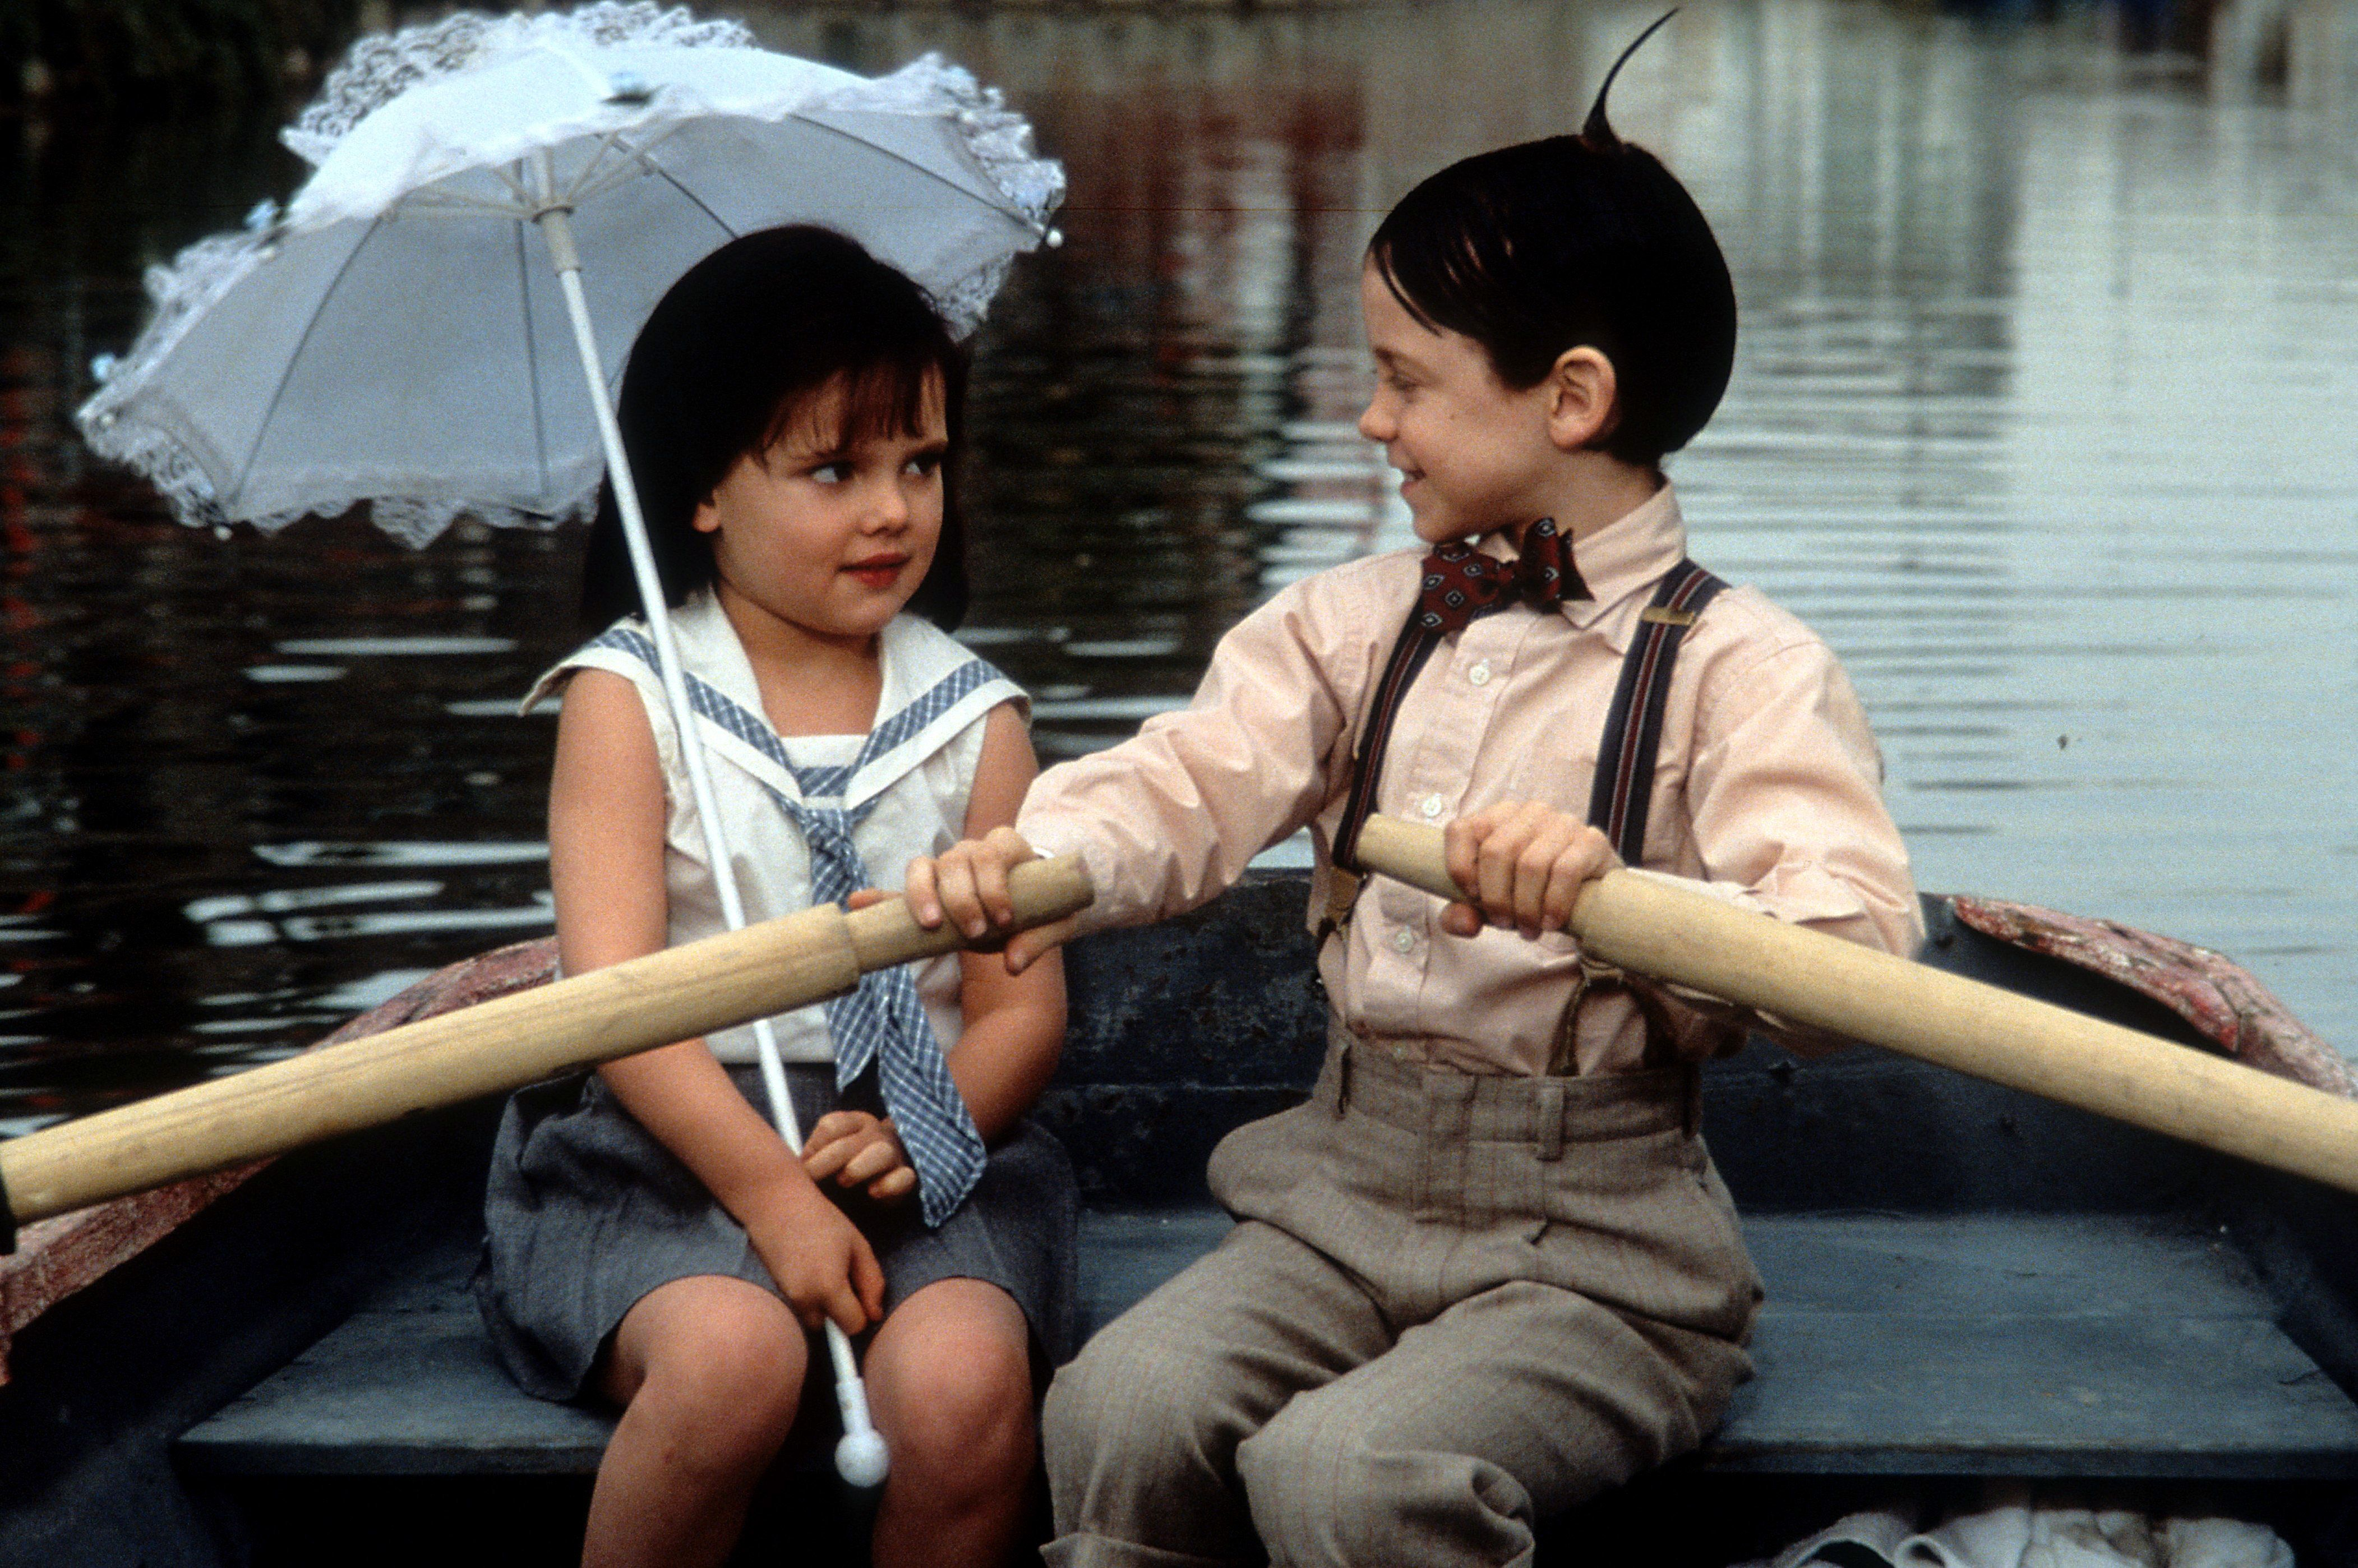 """Bug Hall rowing a boat while looking at Brittany Ashton Holmes in a scene from the film """"The Little Rascals,"""" 1994."""